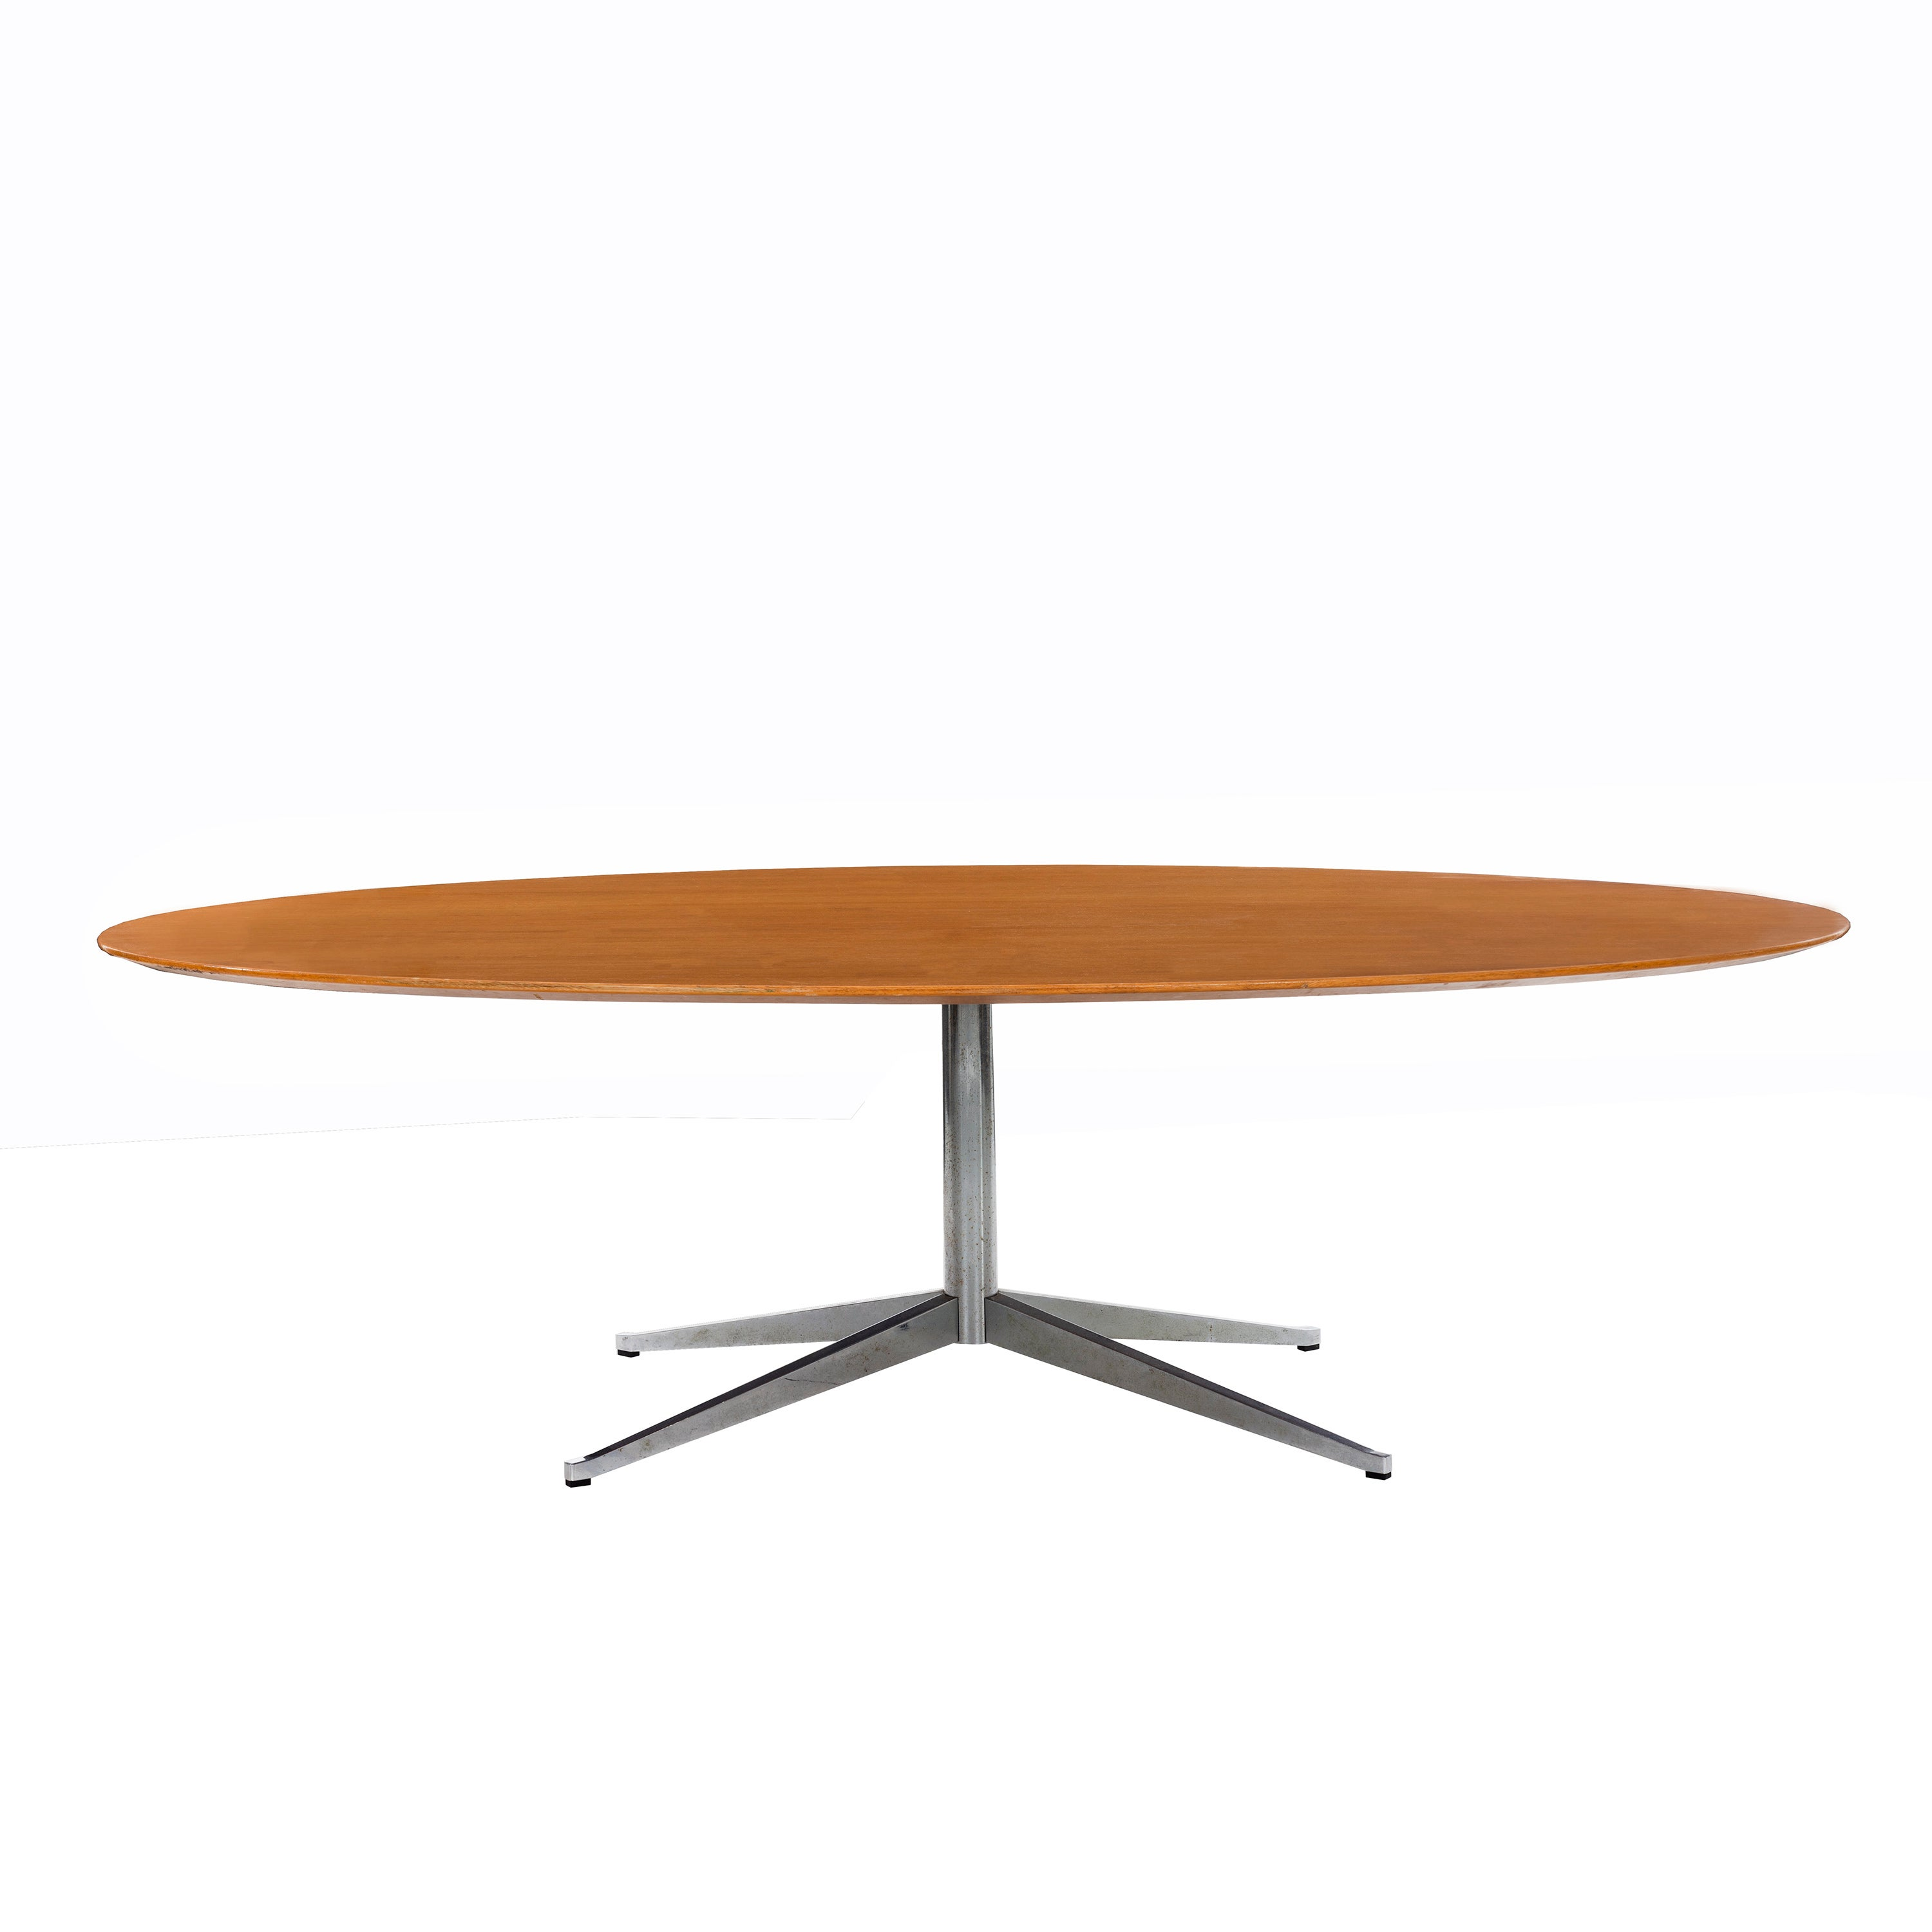 Knoll Table Florence Knoll Dining Table Or Desk